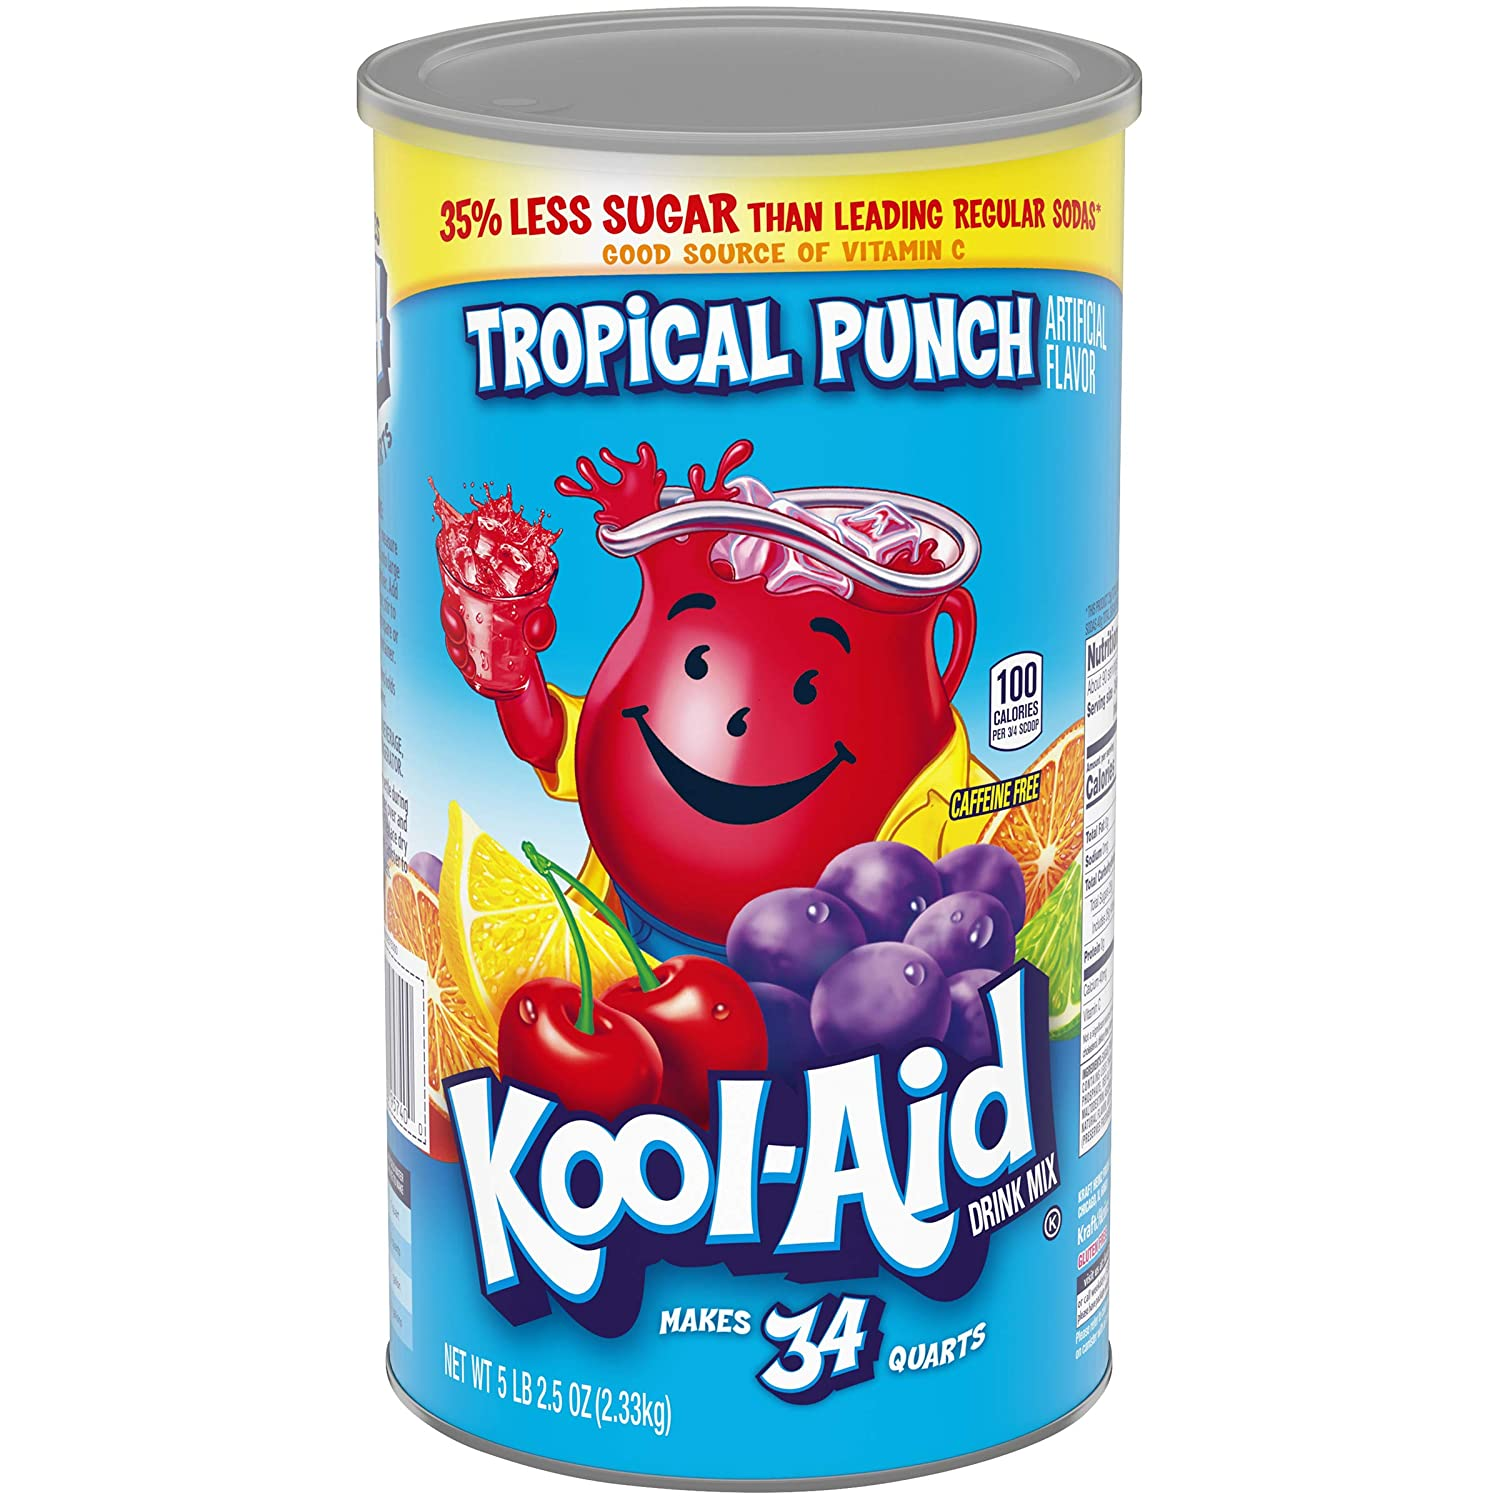 Kool Aid Tropical Punch Powdered Drink Mix (5Lb 2.5oz Canister)